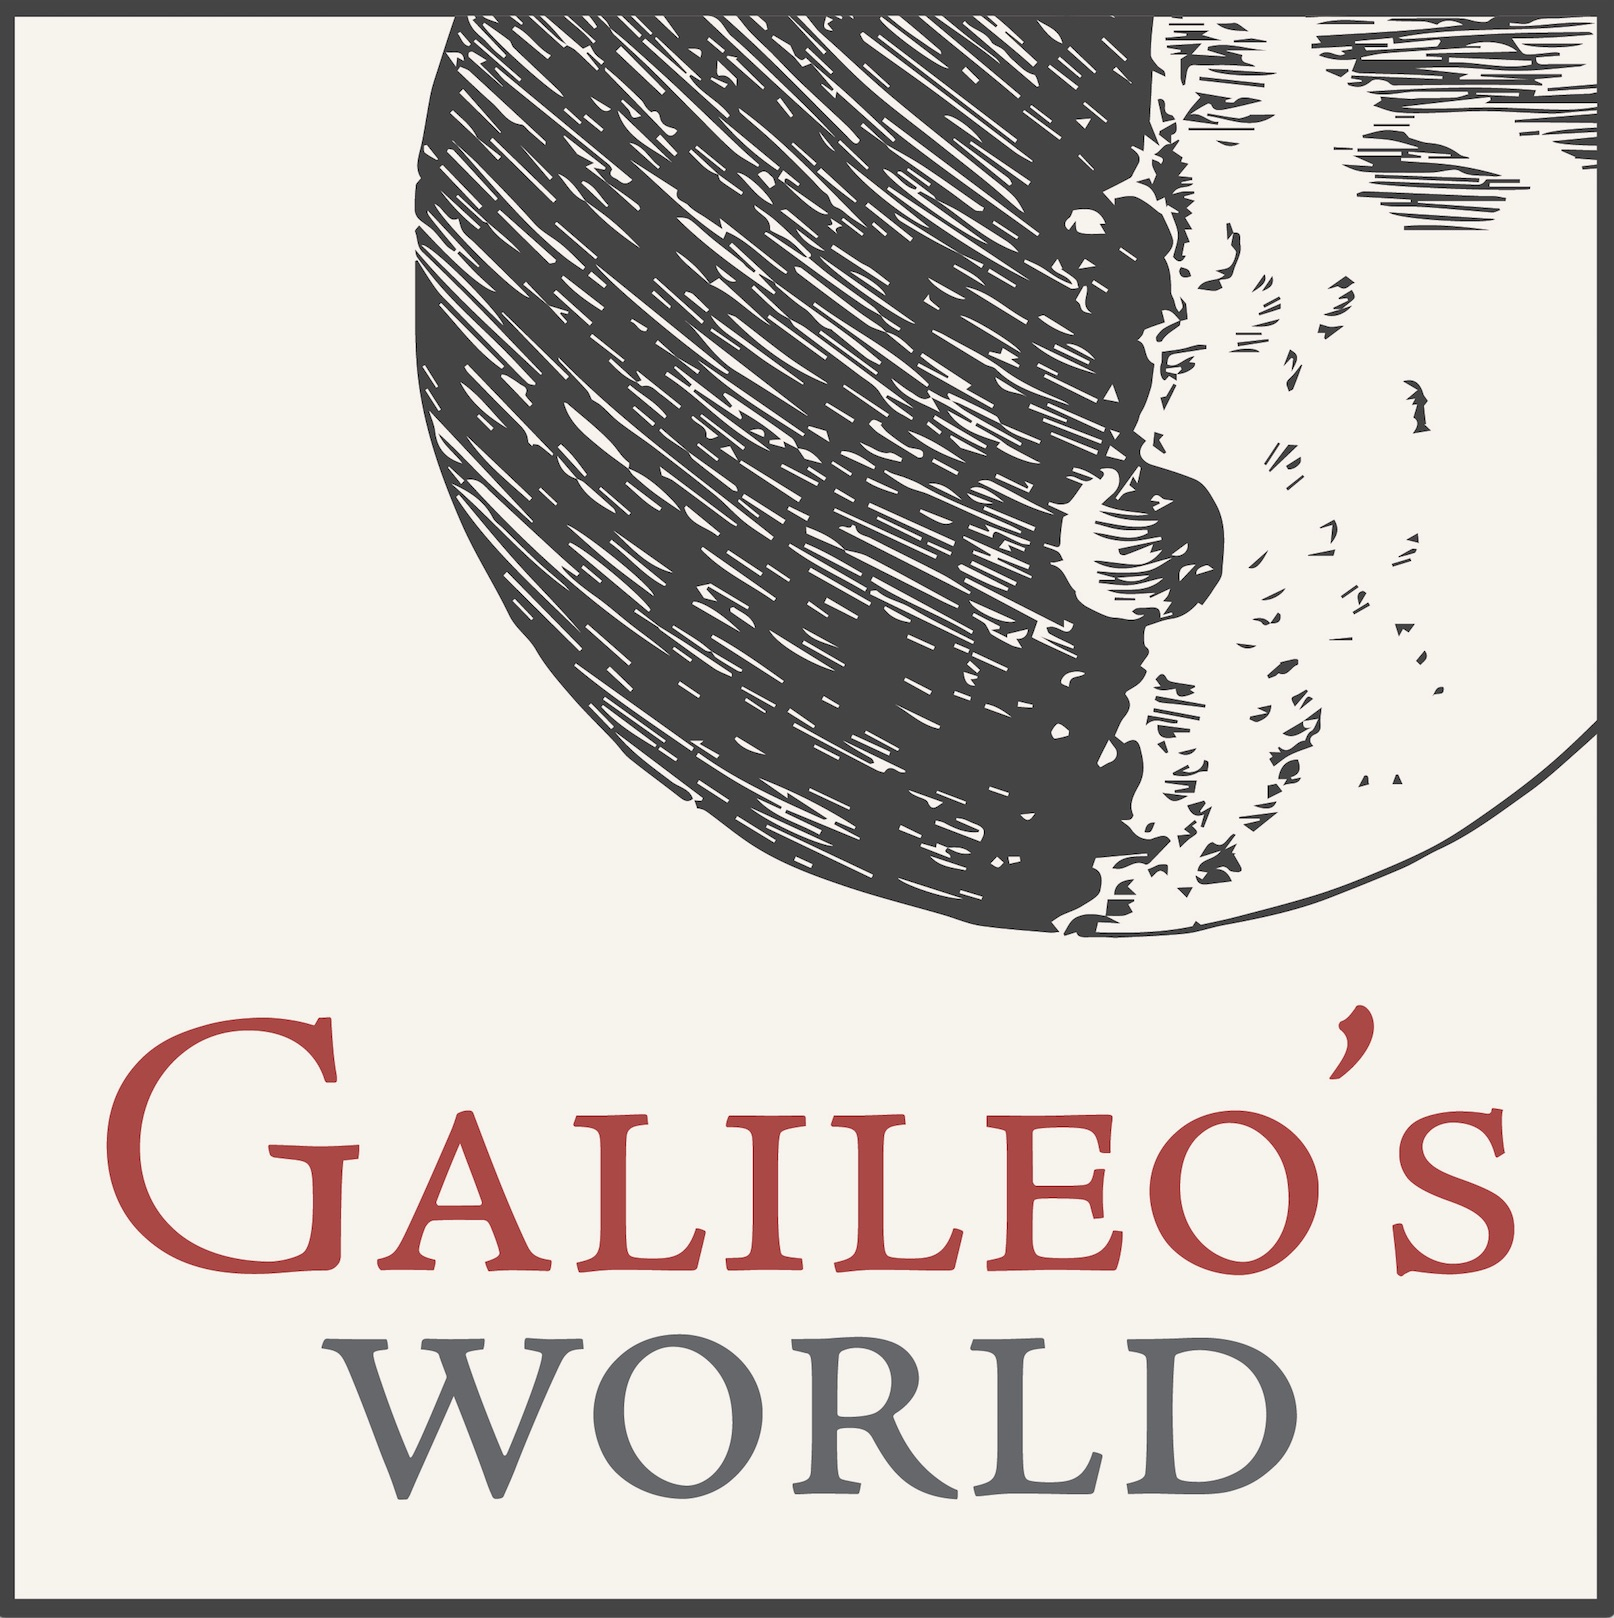 Galileo's World website logo